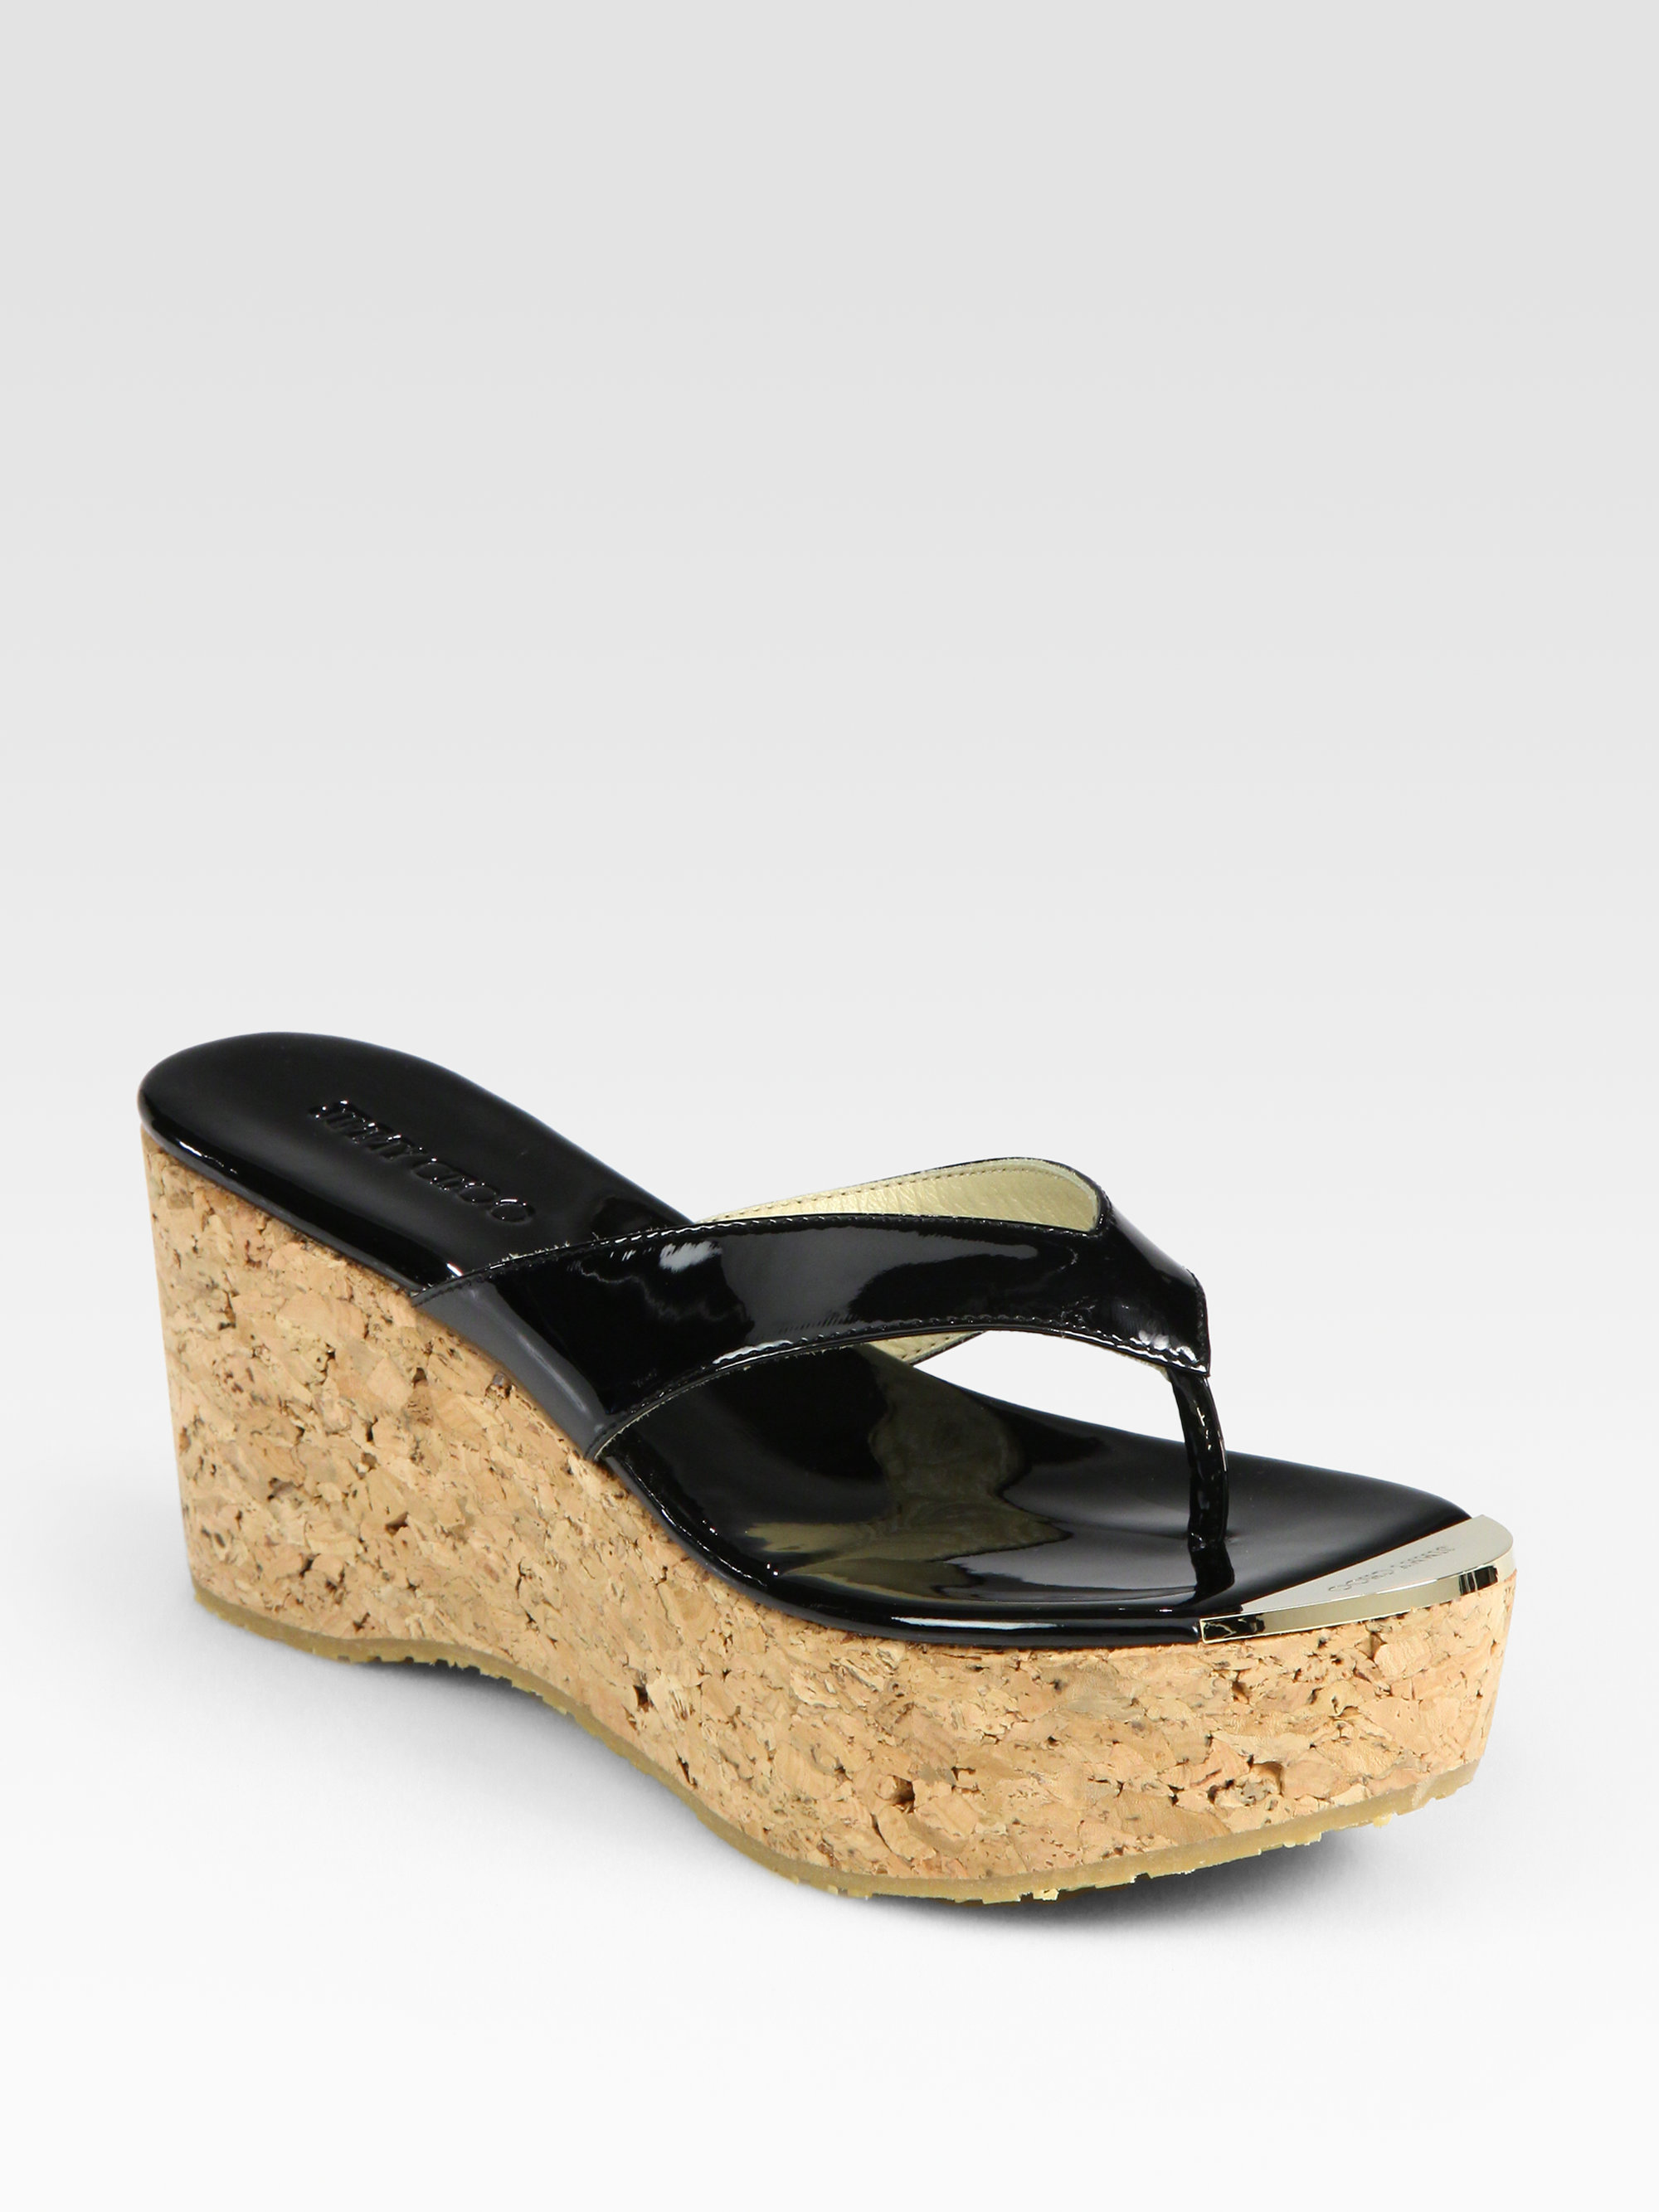 buy cheap popular discount with mastercard Jimmy Choo Platform Thong Sandals very cheap price free shipping 2015 new jHip3NX